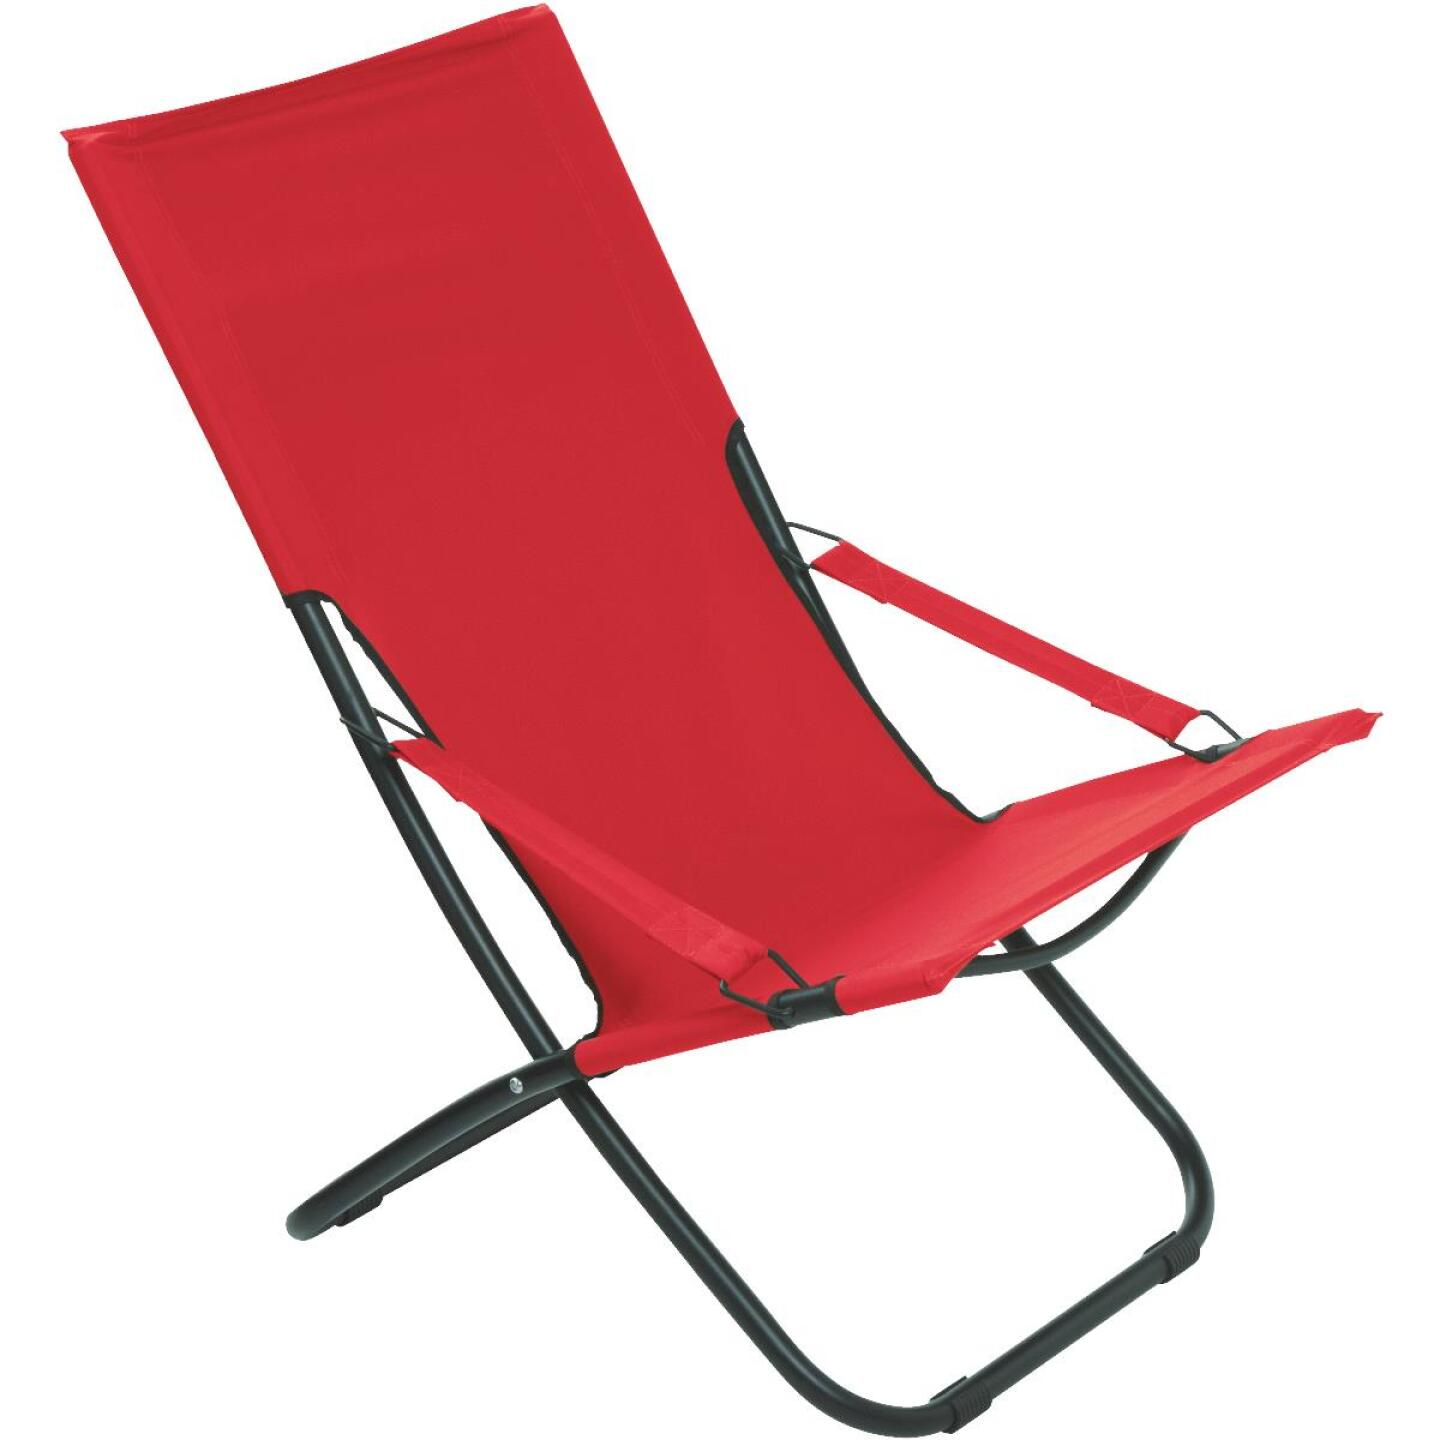 Pride Family Brands Folding Hammock Chair, Red Image 1